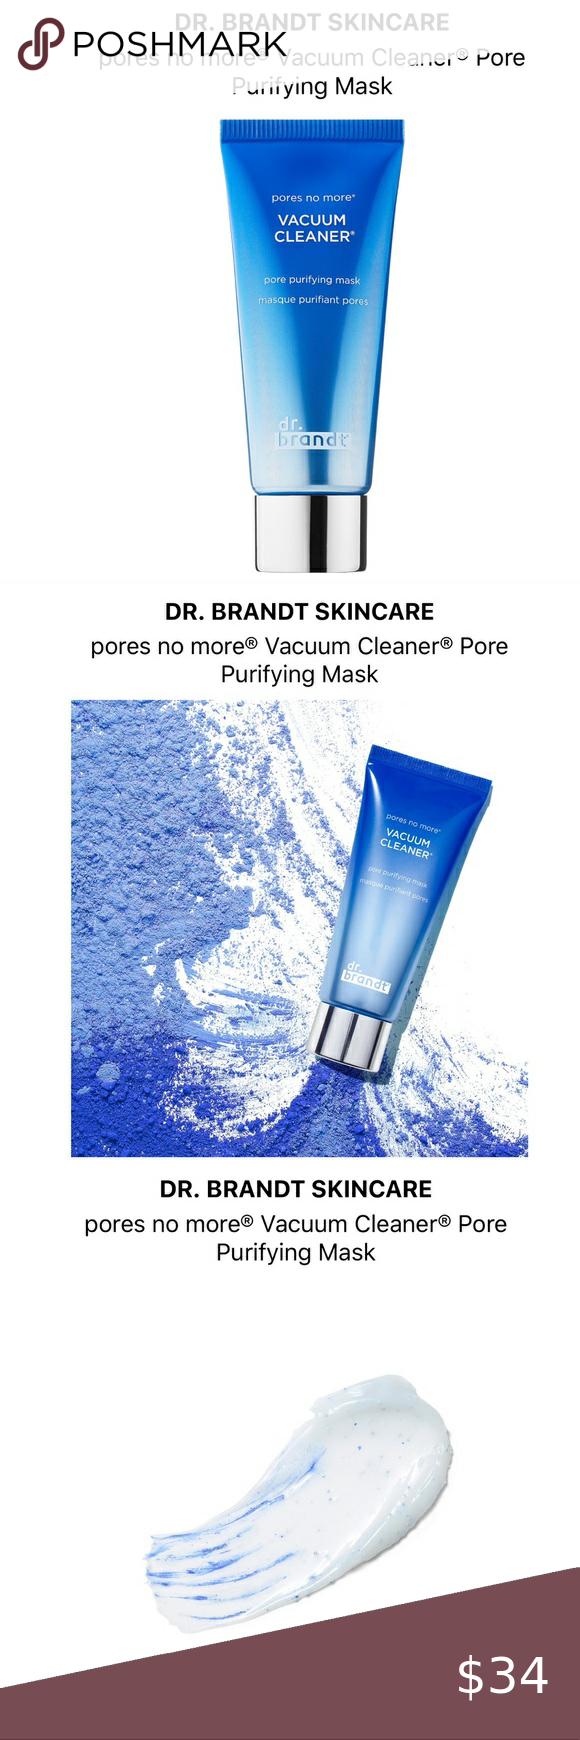 Dr Brandt Pores No More Vacuum Cleaner Pore Mask Clean Pores Pore Mask Purifying Mask